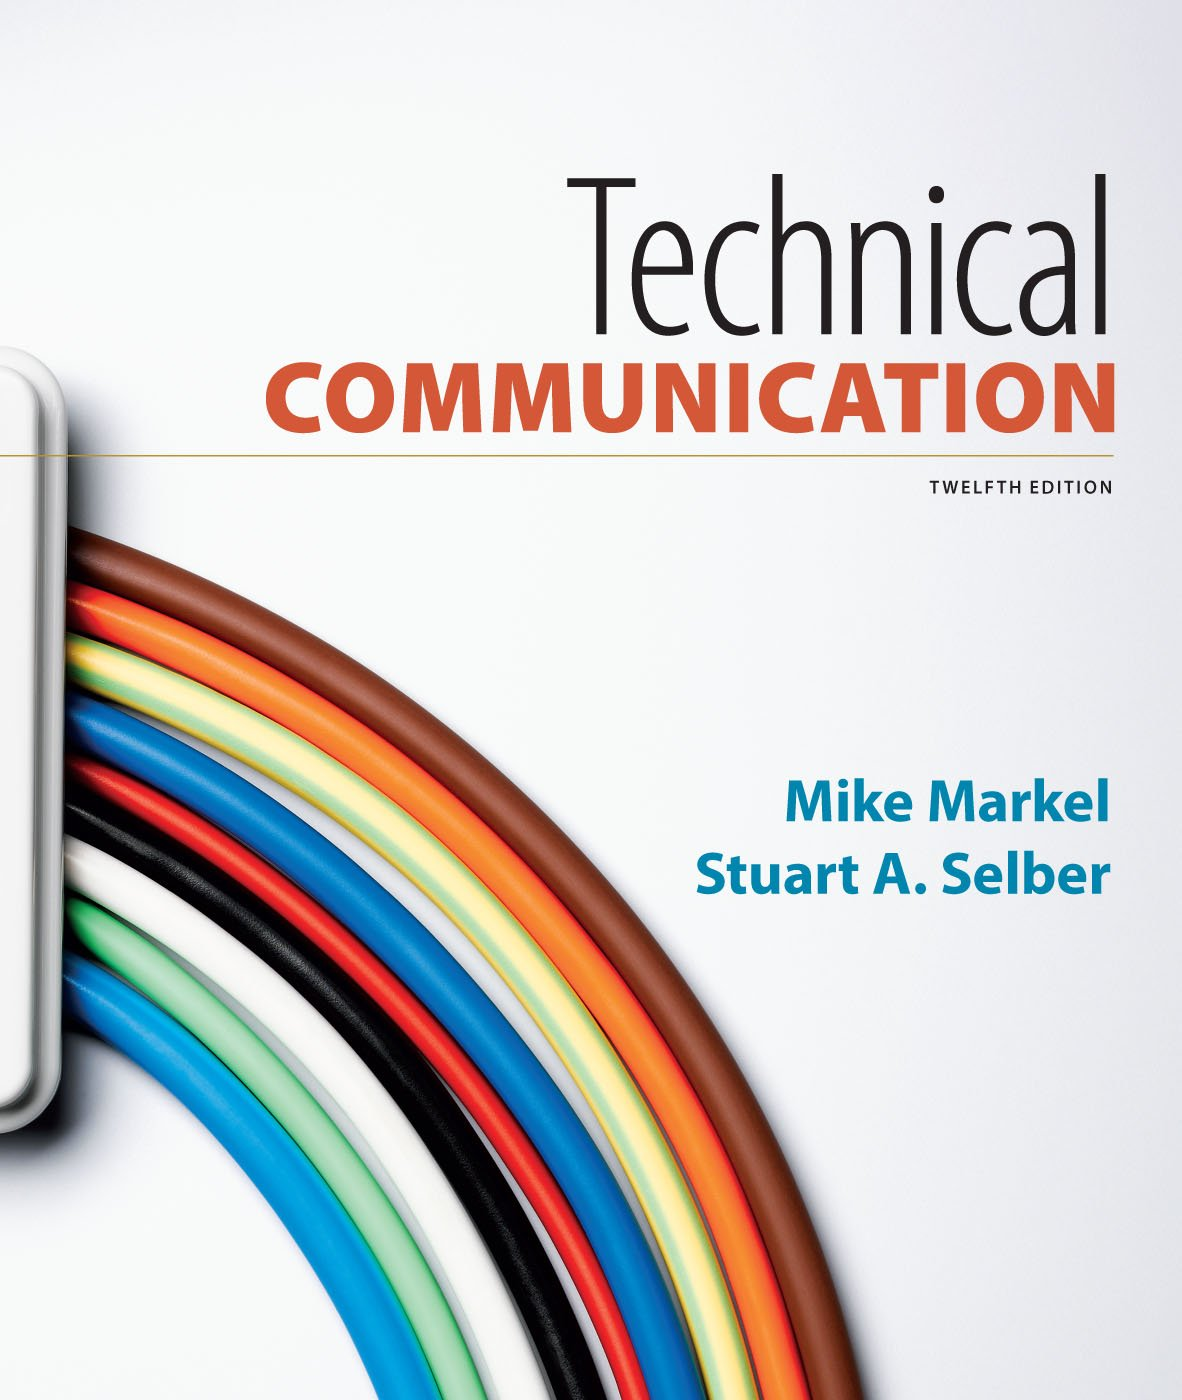 Technical Communication 14th Edition Pdf Download